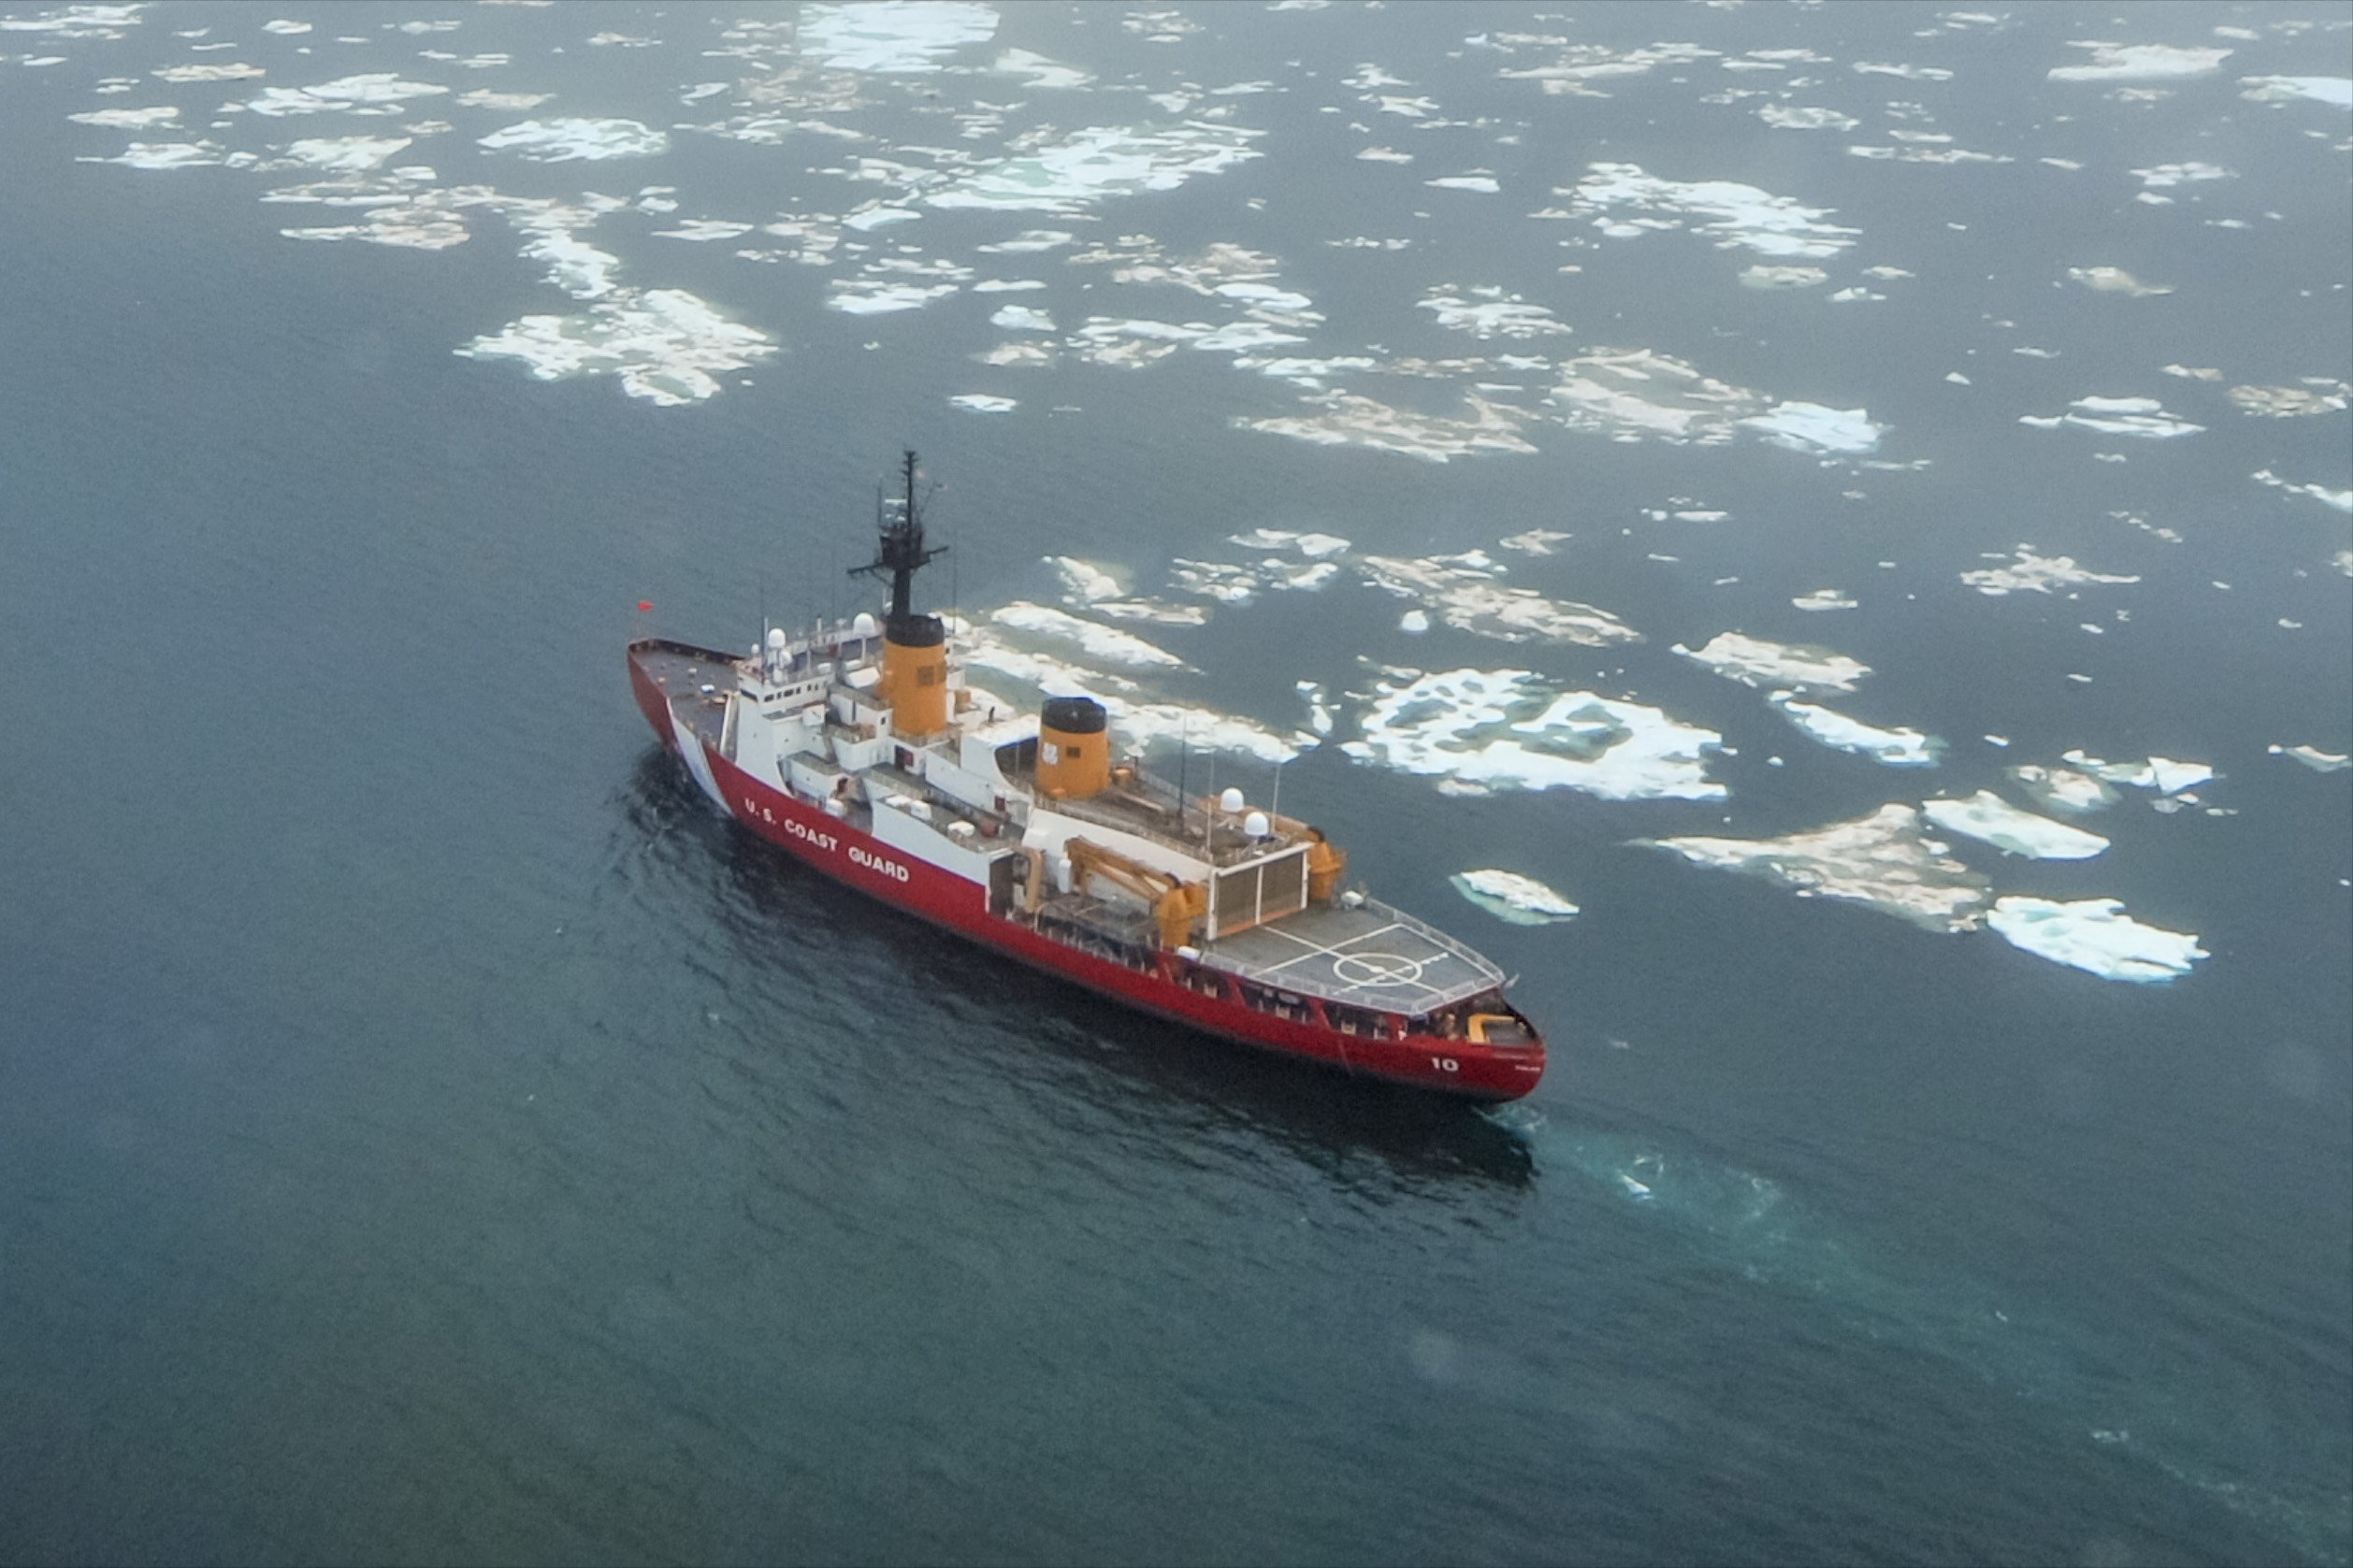 The U.S. heavy-duty Coast Guard icebreaker Polar Star will make a winter voyage to Arctic Alaska